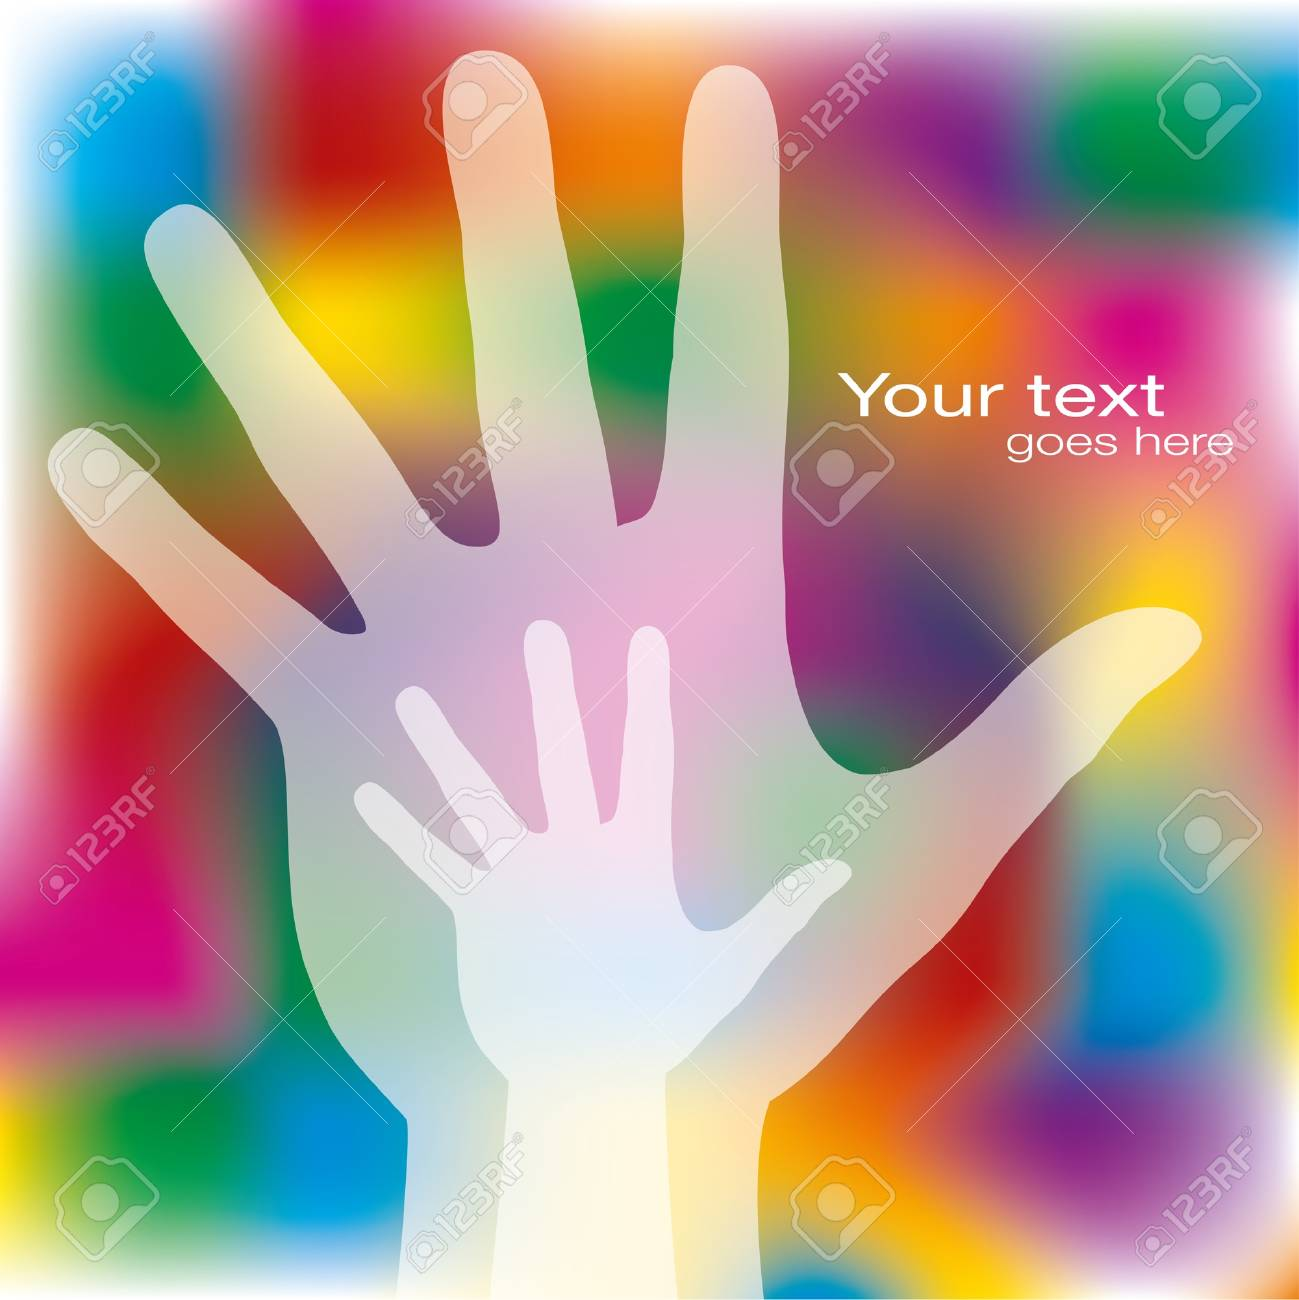 Reaching hands design with copy space. Stock Vector - 10355455